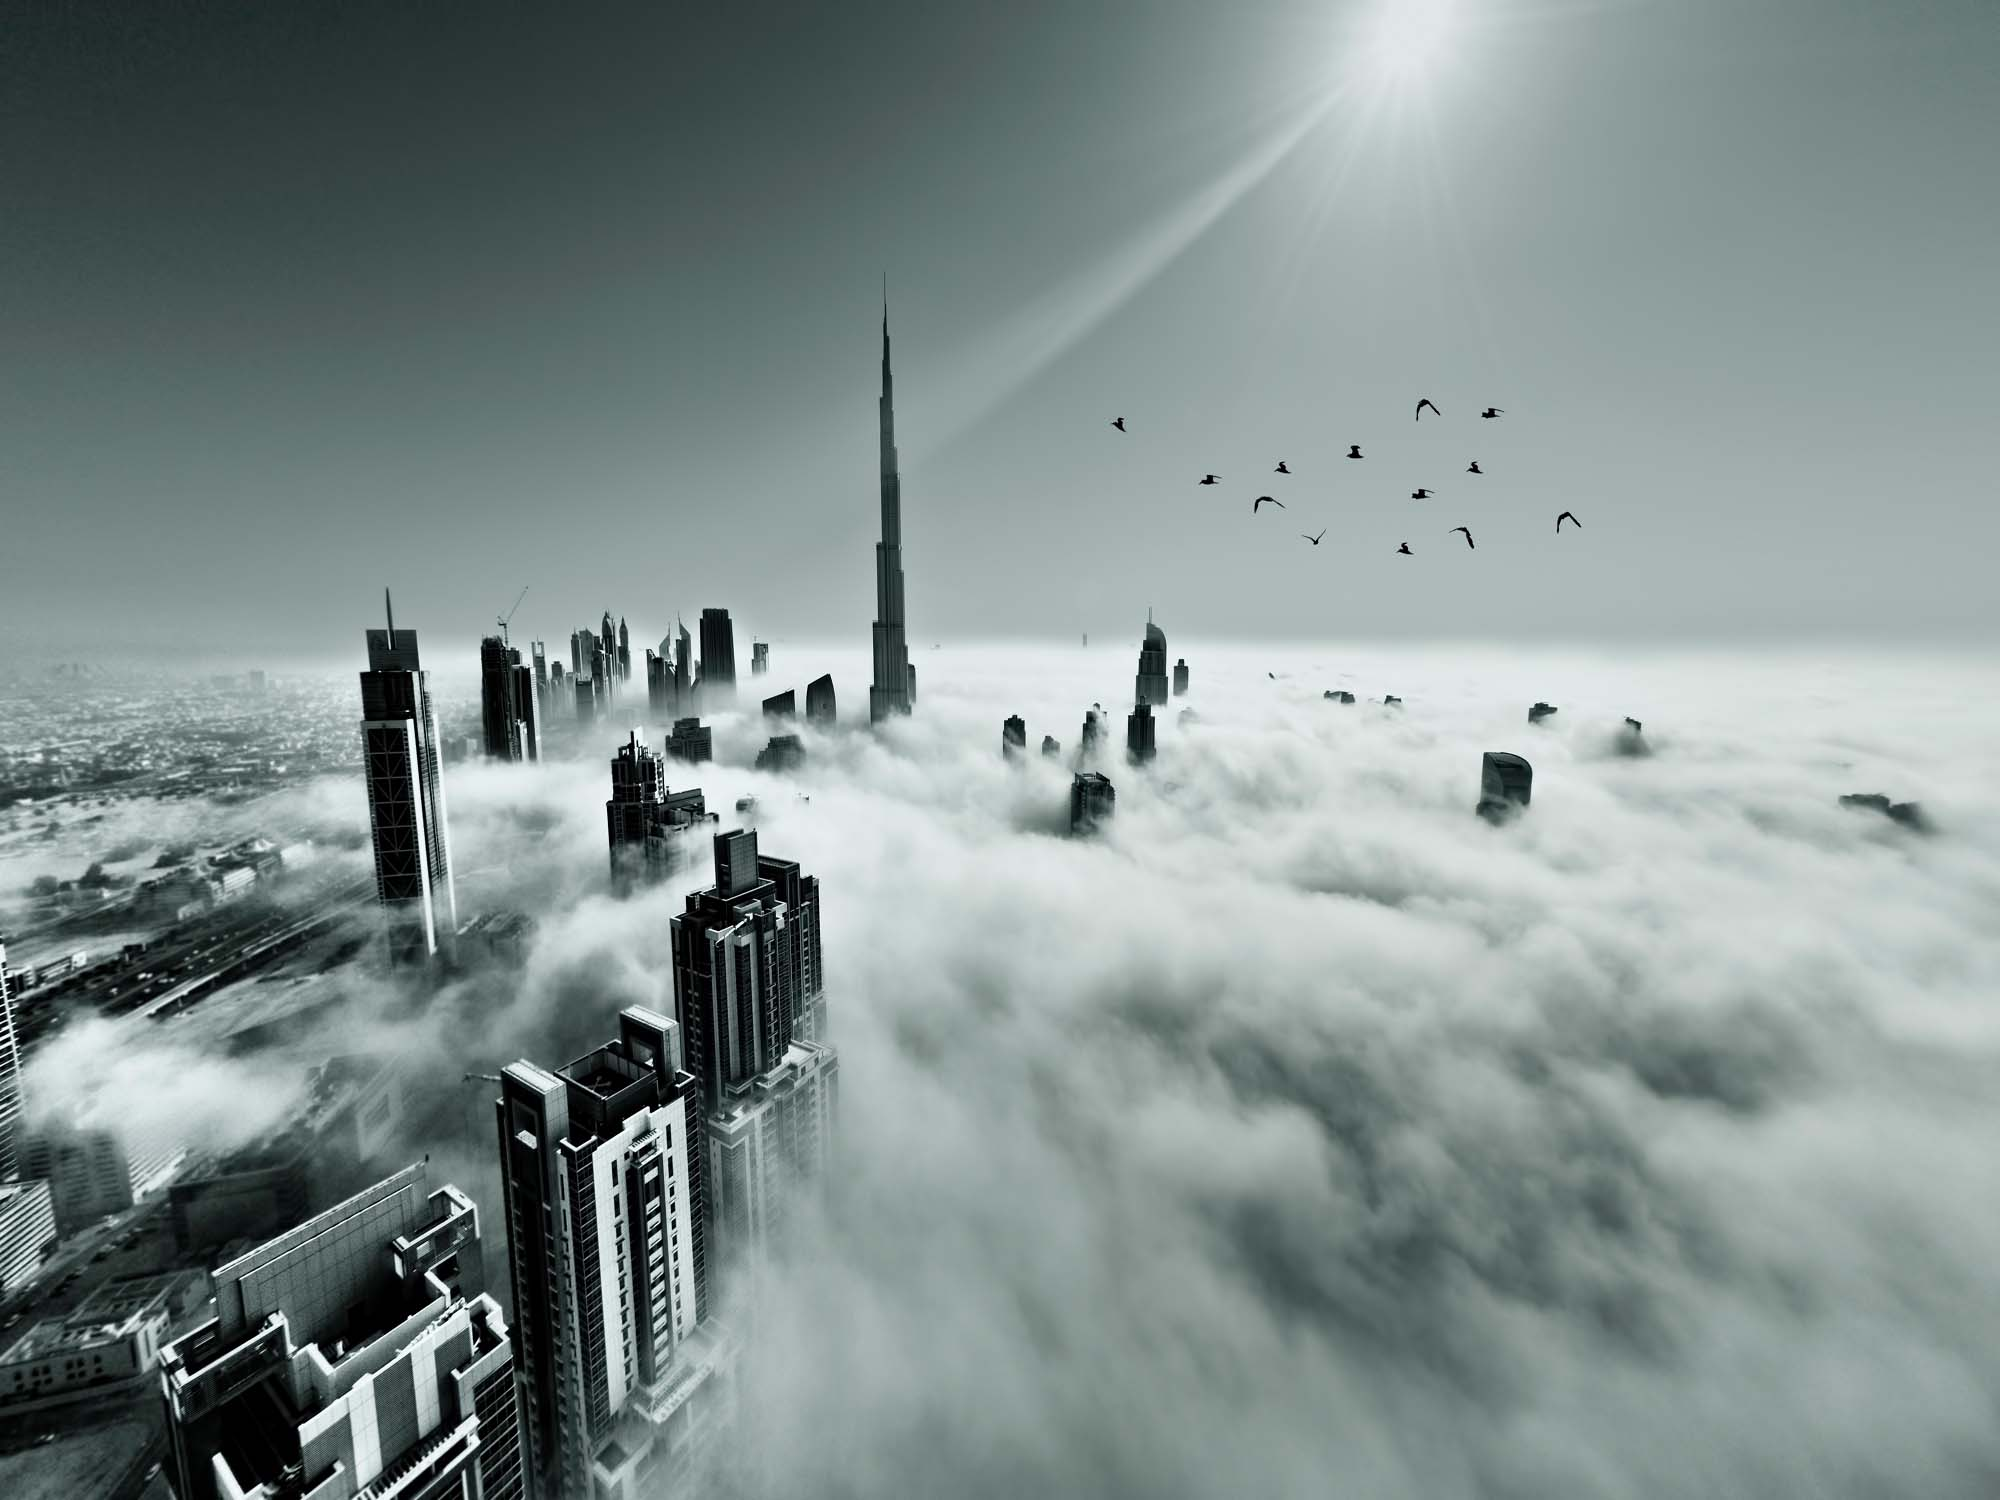 Up up and Above by Naufal